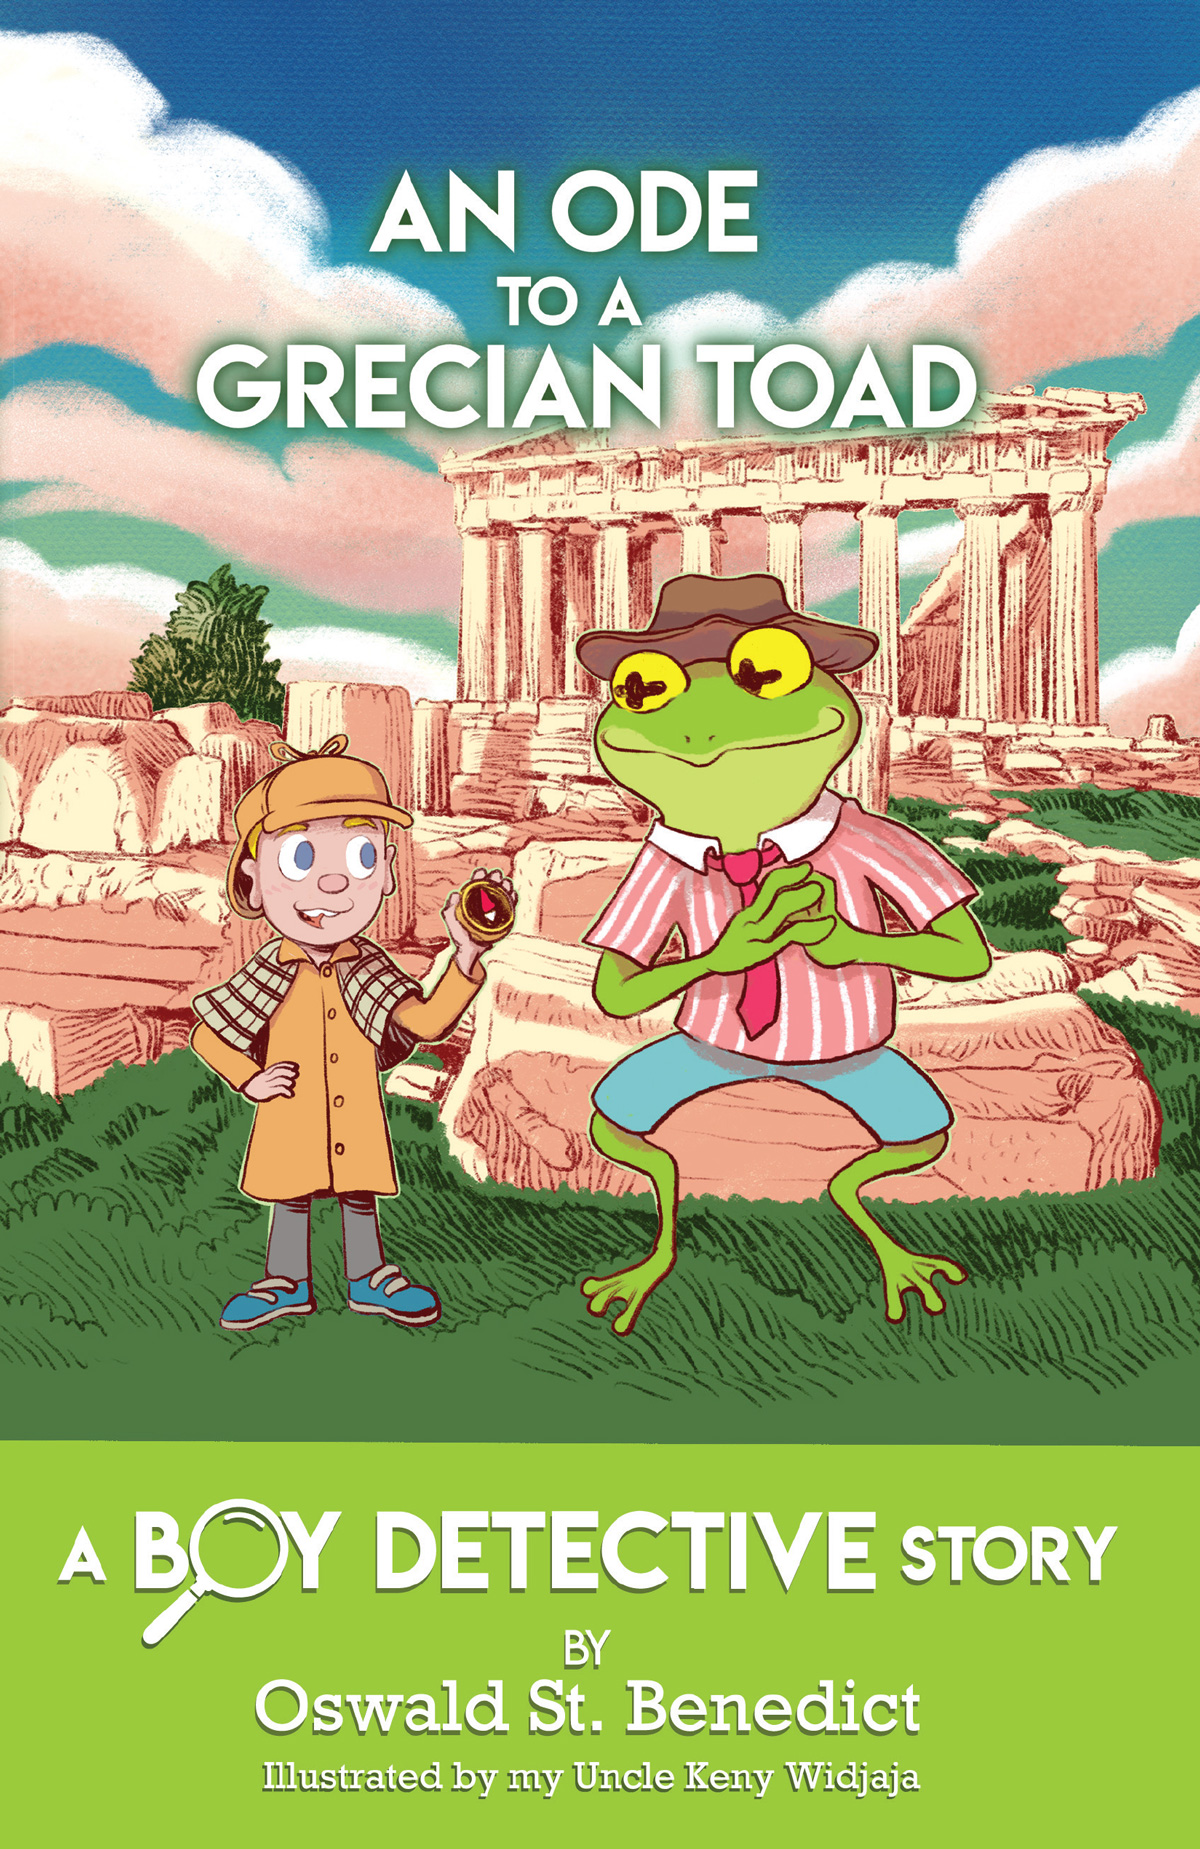 An Ode to a Grecian Toad